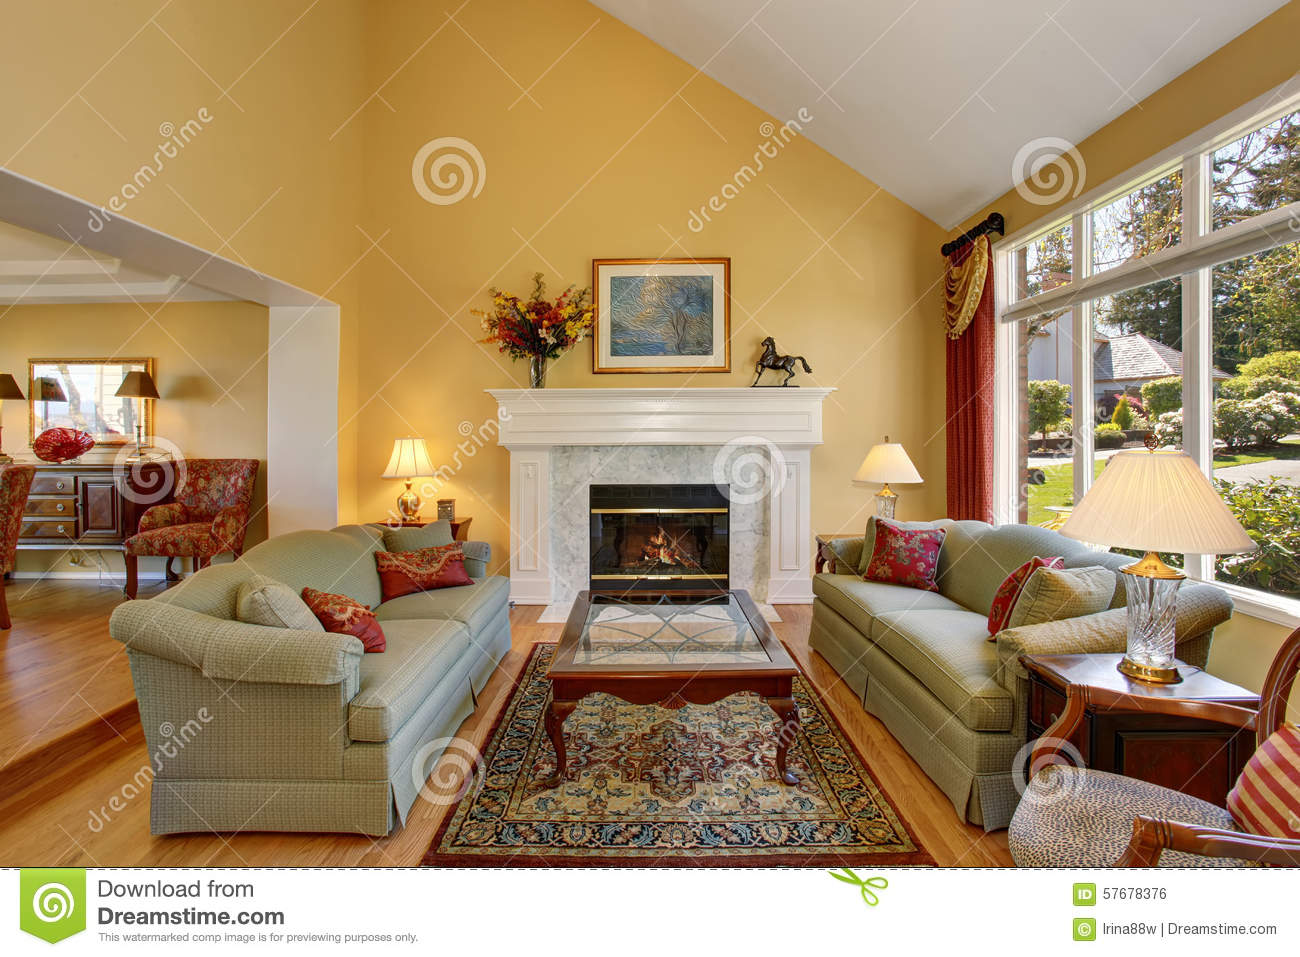 Green and yellow living room - Brilliant Living Room With Green Sofas And Yellow Walls Royalty Free Stock Image